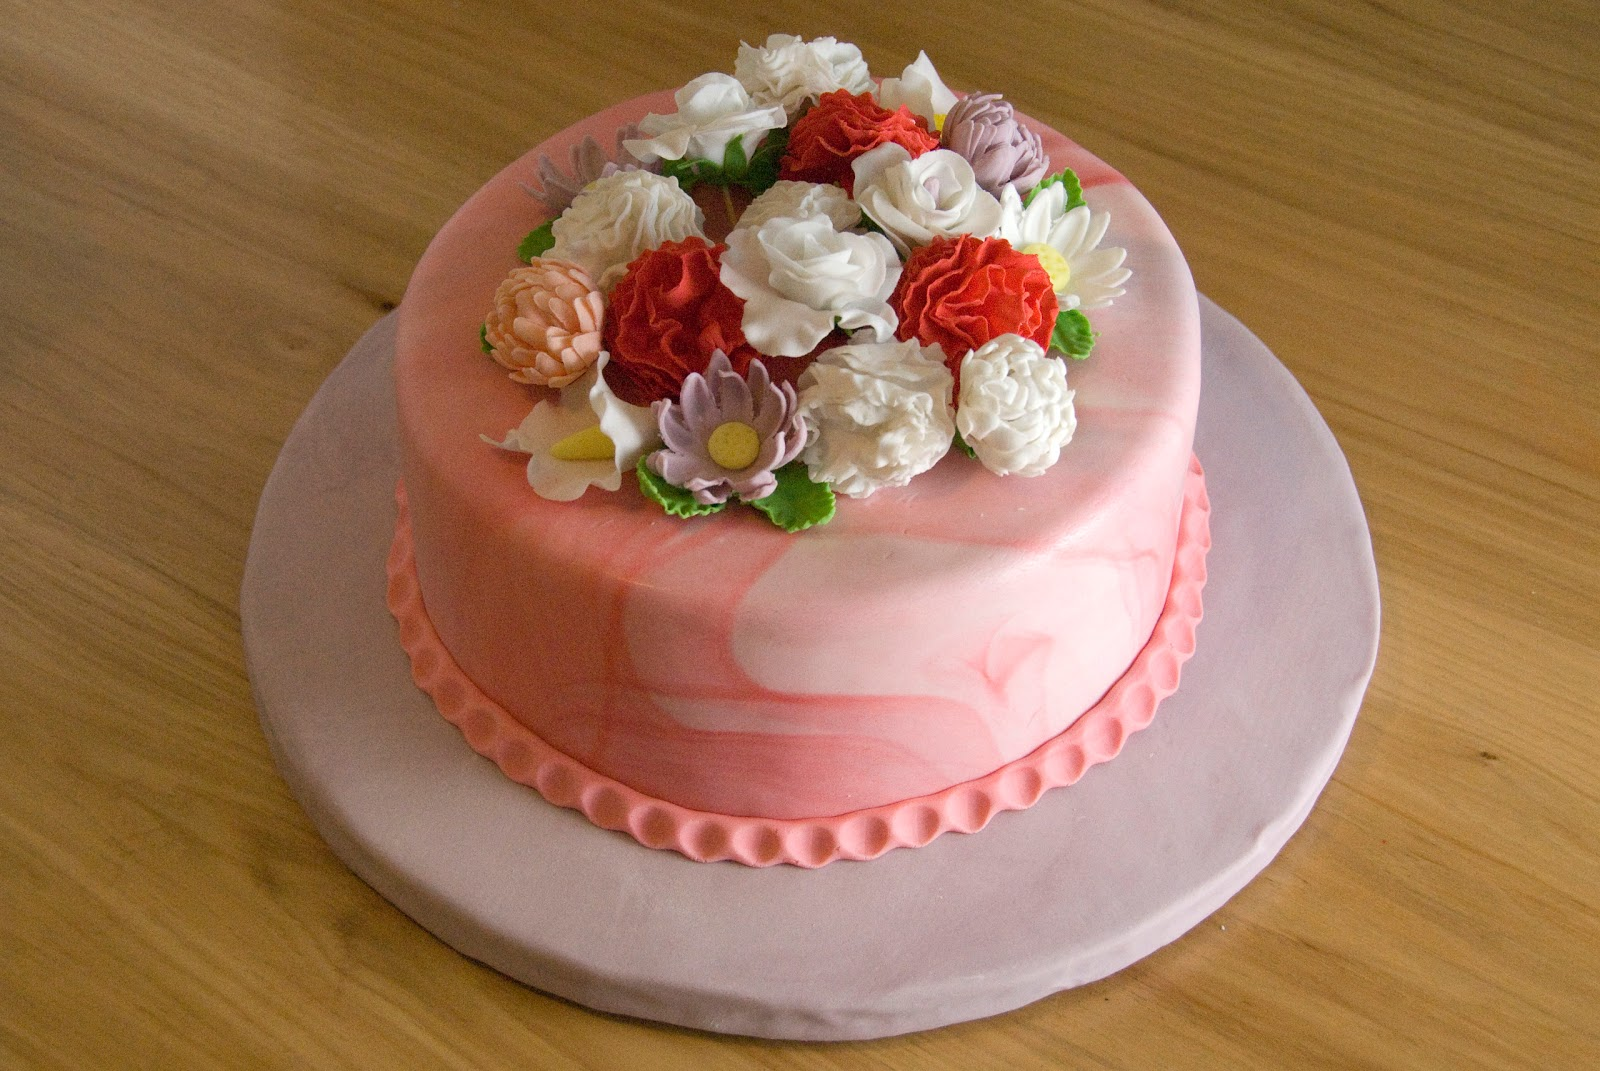 Decorate Cake With Fondant Flowers : Night Baking: 3rd blogiversary fondant flower garden cake